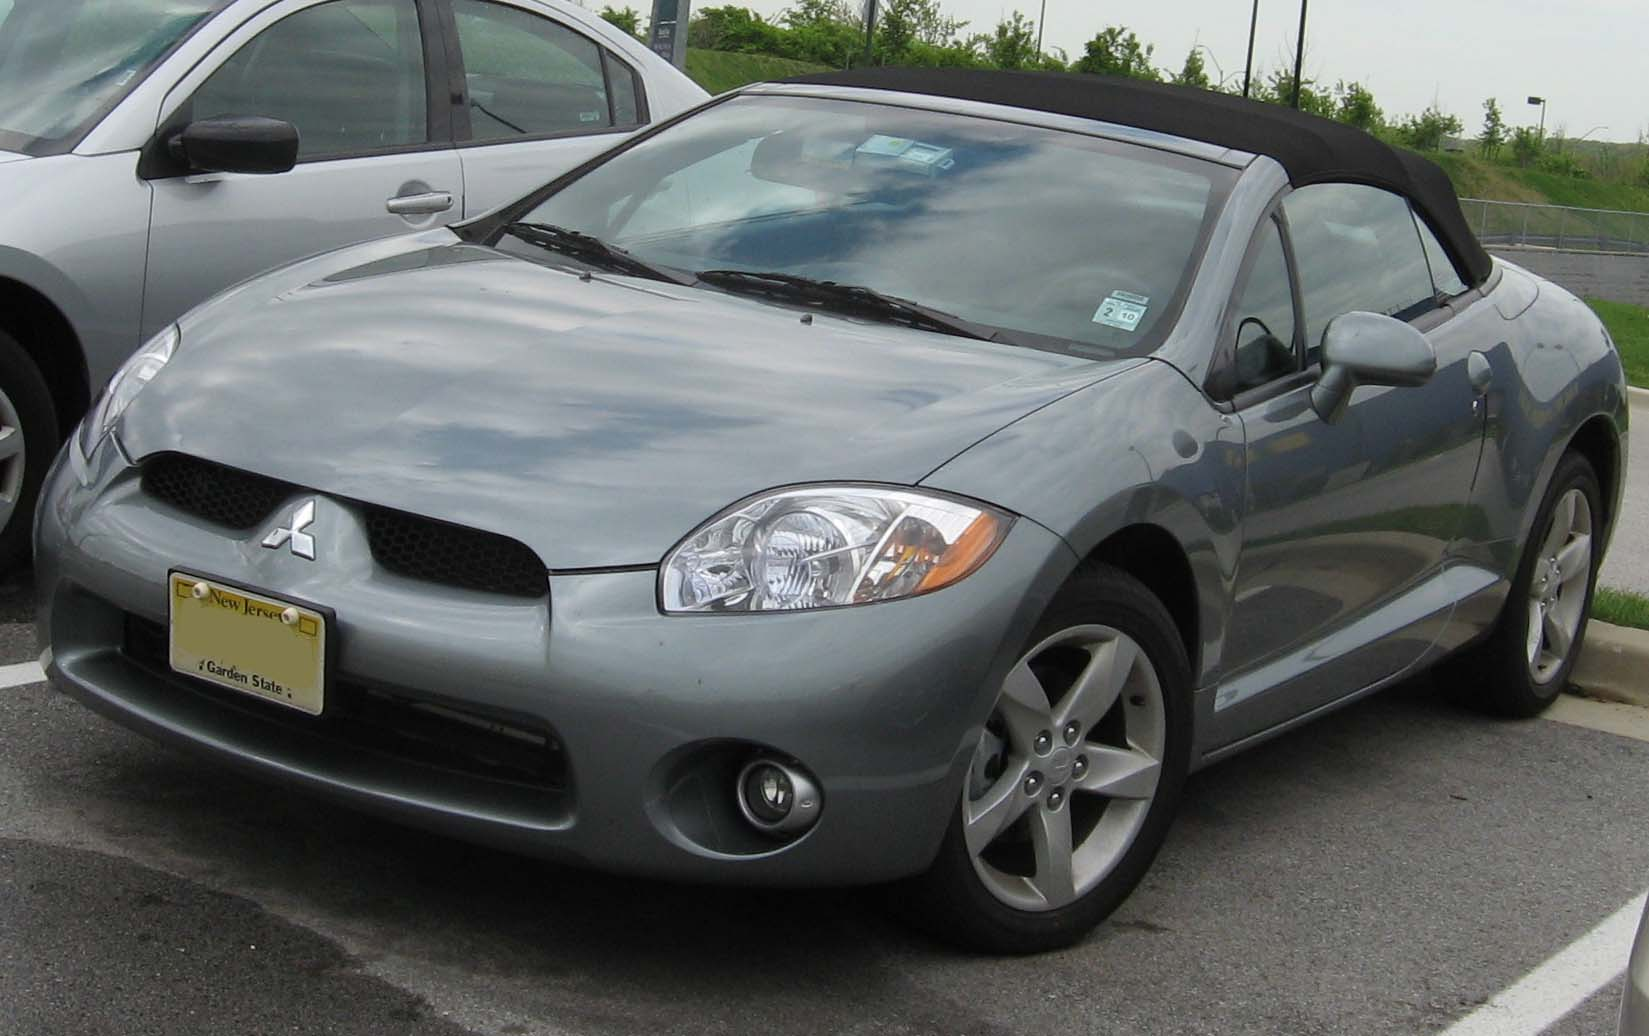 mitsubishi eclipse iv spider 2010 pictures #1